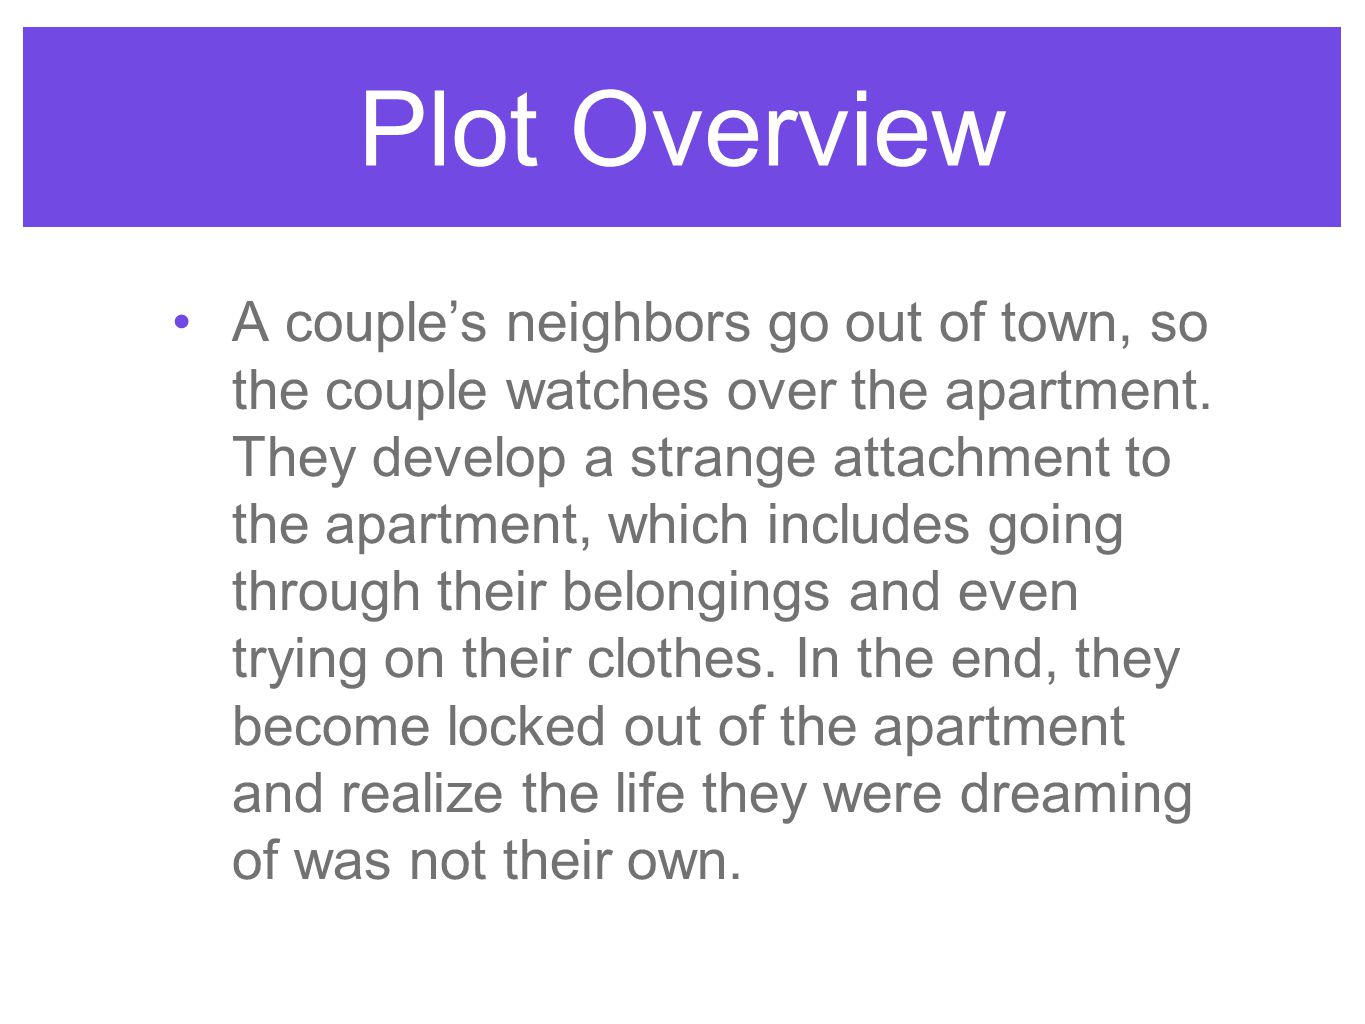 Plot Overview A couples neighbors go out of town, so the couple watches over the apartment. They develop a strange attachment to the apartment, which